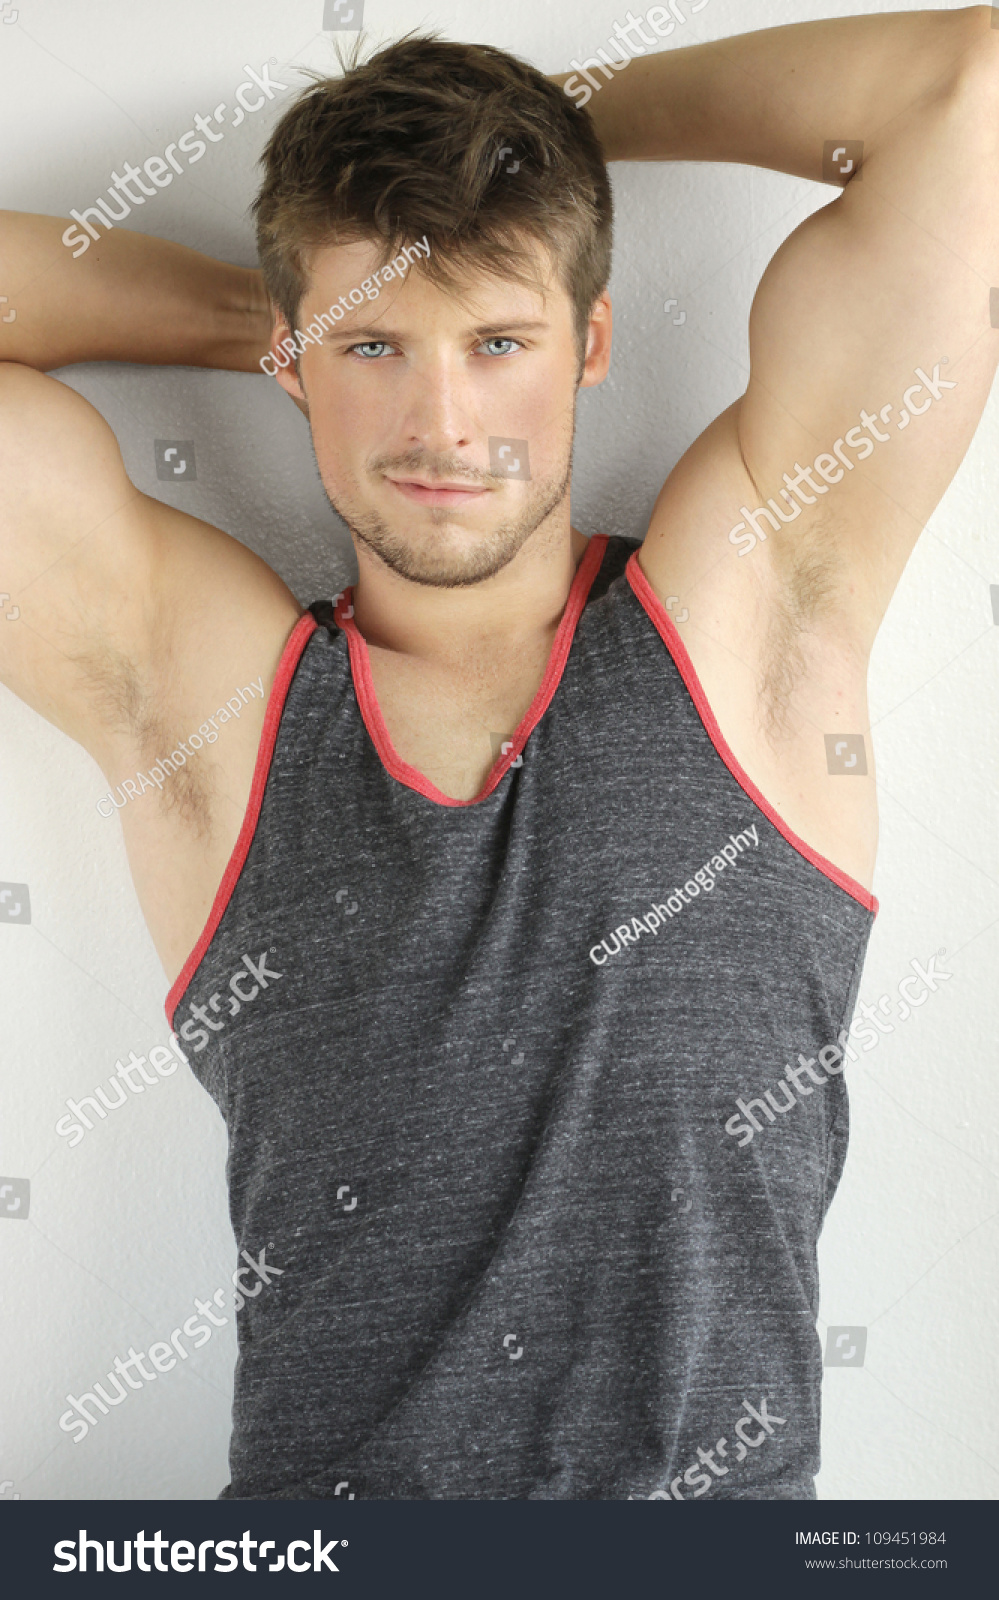 Very Good Looking Young Male Model Stock Photo 109451984